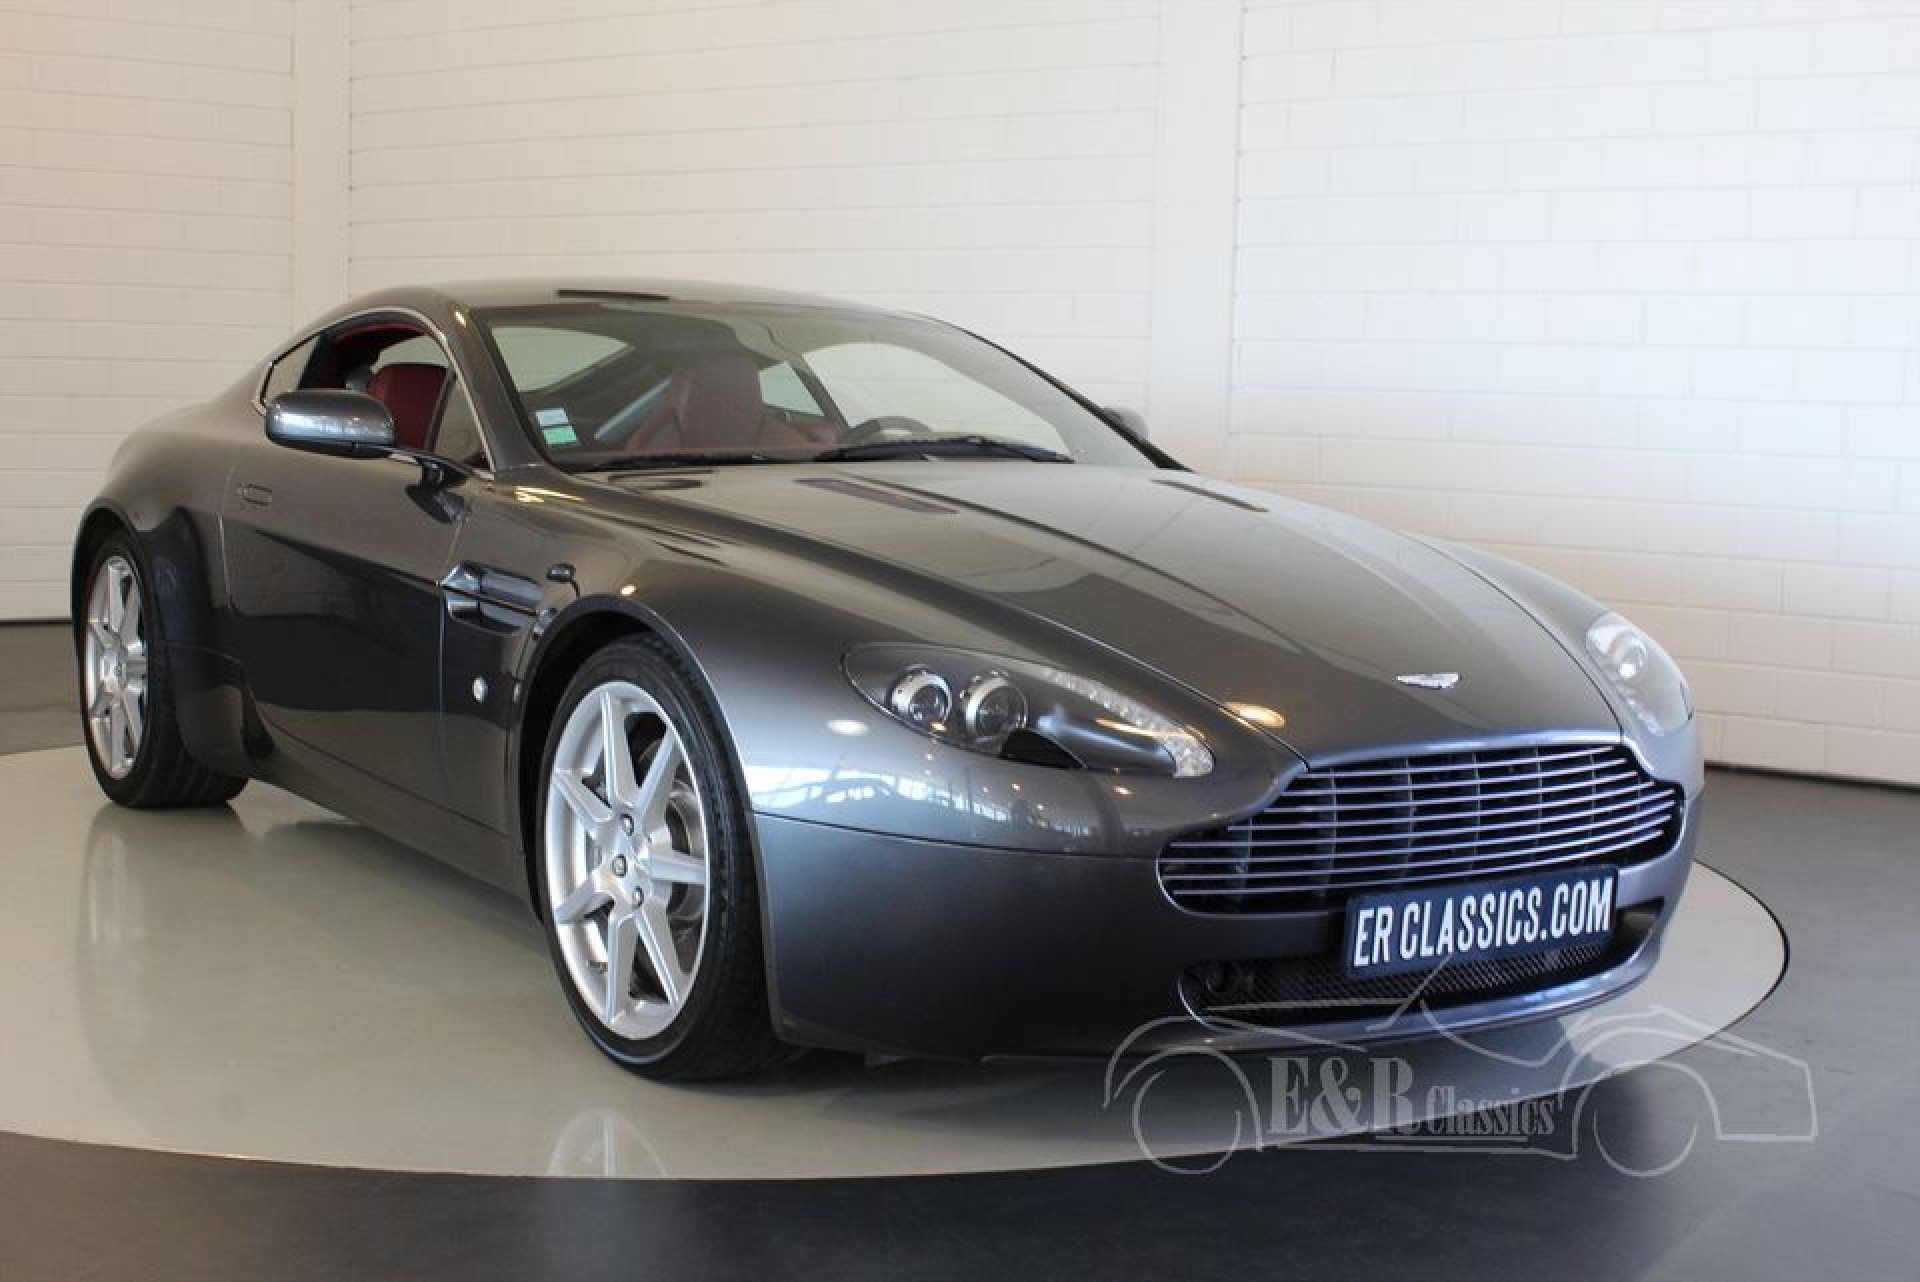 aston martin v8 vantage 2006 coupe for sale at erclassics. Black Bedroom Furniture Sets. Home Design Ideas